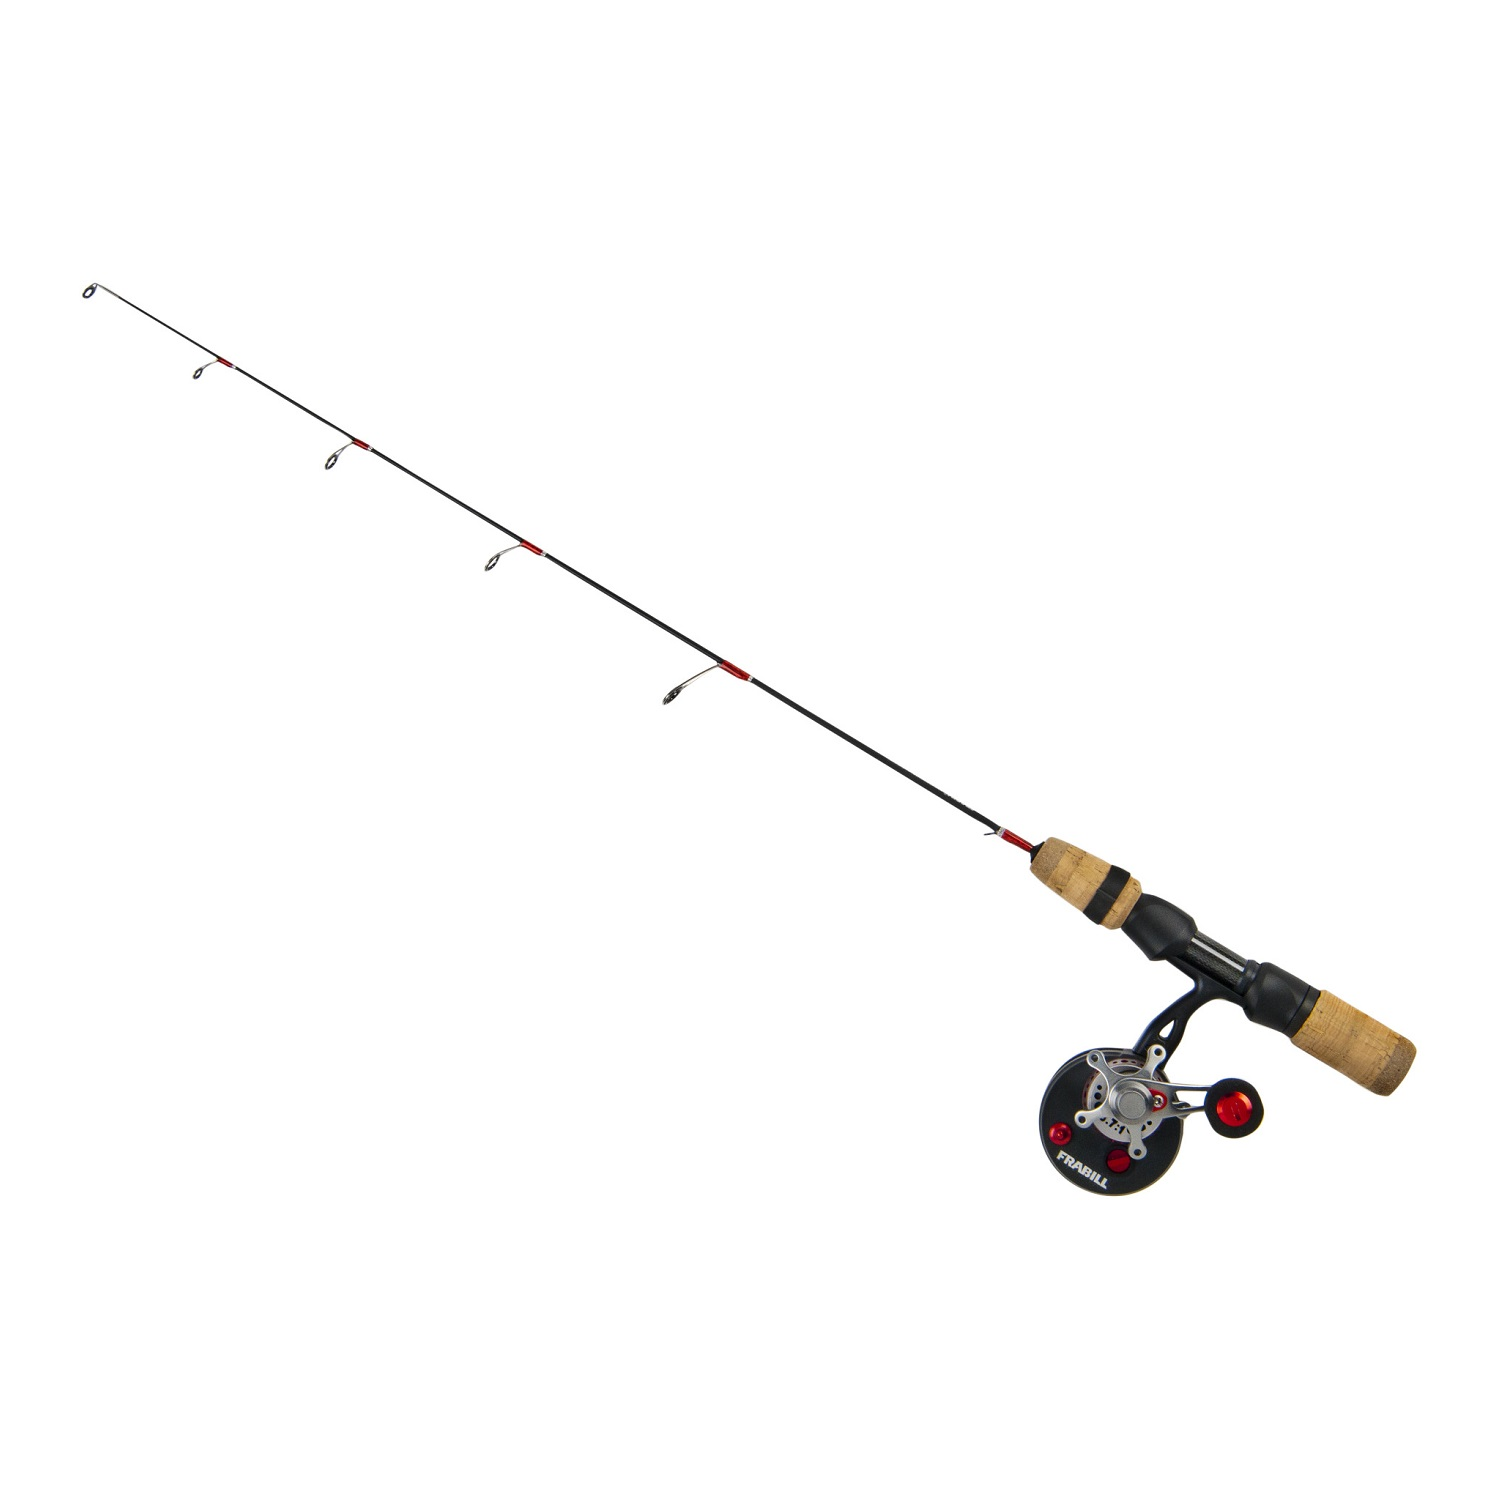 Frabill 371 Straight Line Bro 18   Micro Light Combo  best price